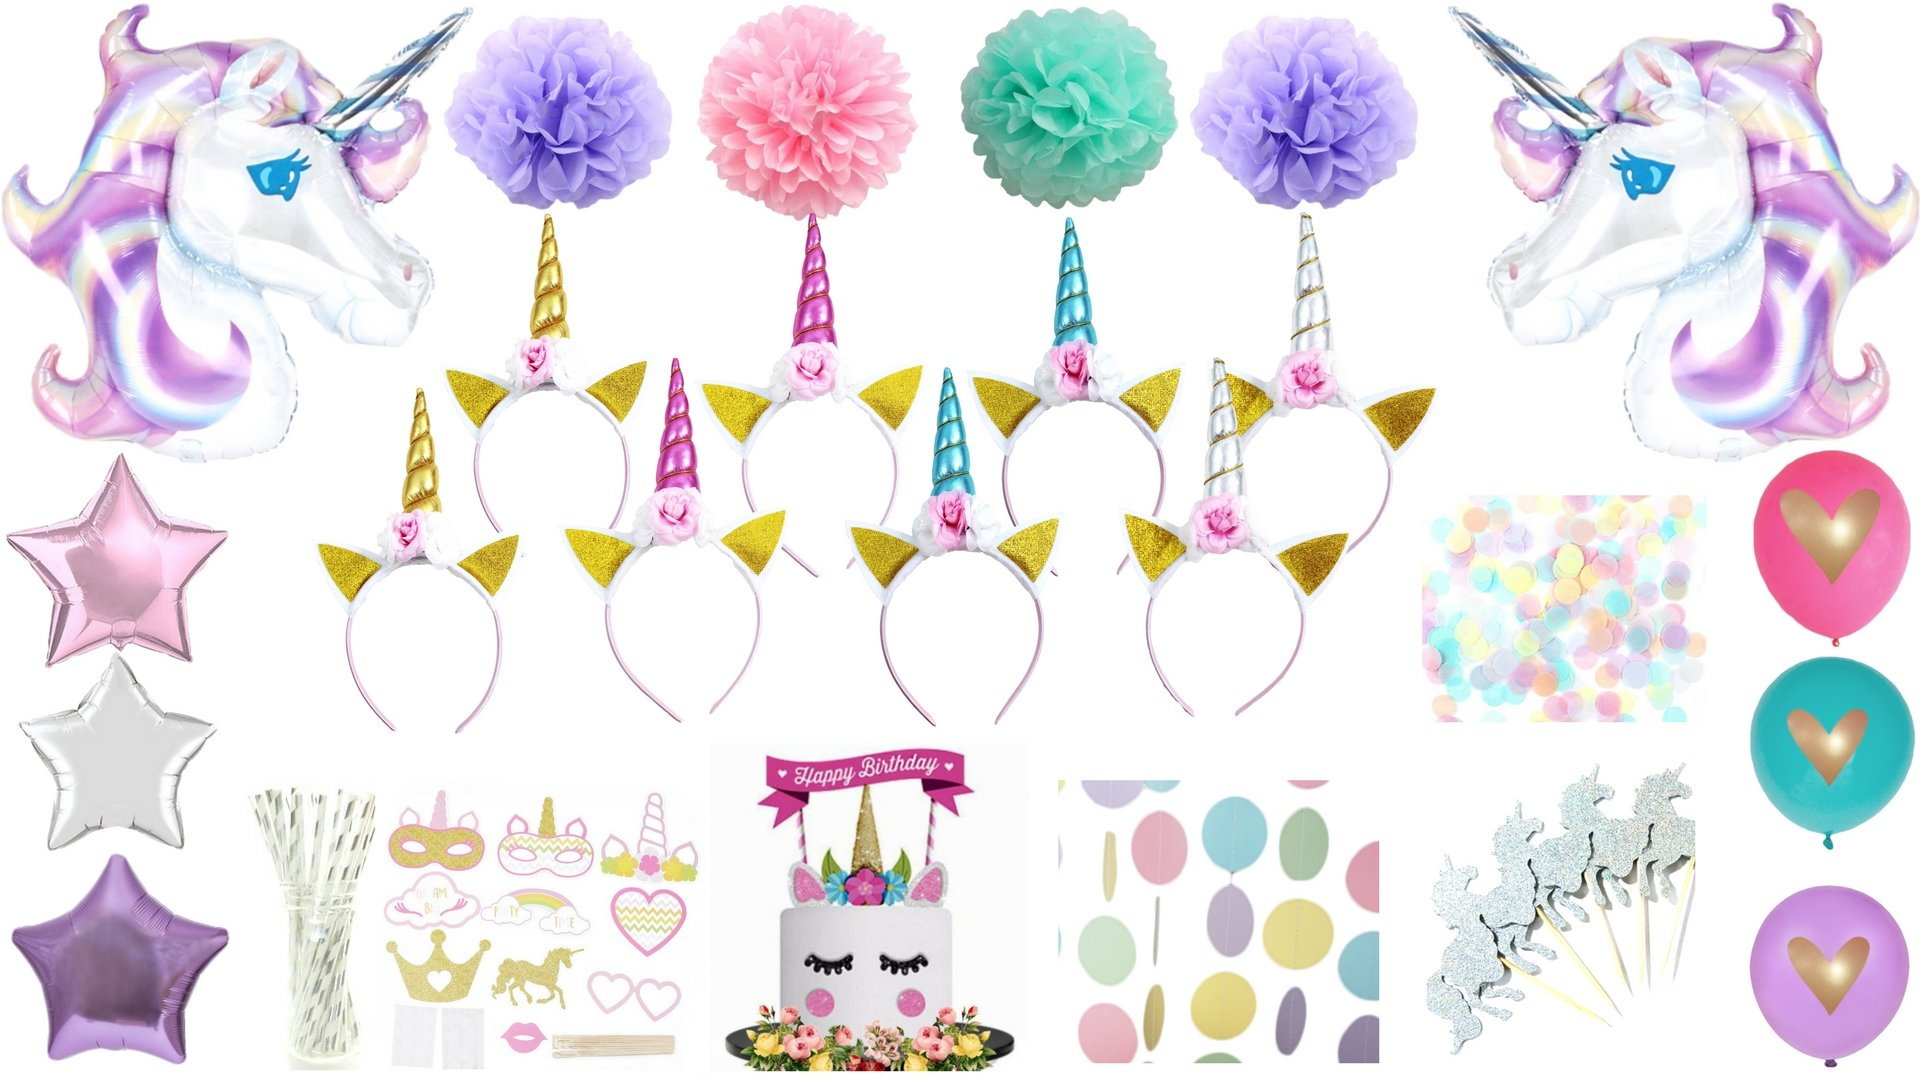 Unicorn Party Supplies Birthday Decorations Kit Headband Balloon Photo Booth Props Cake Cupcake Toppers Pastel Glitter Polka Dot Garland Gold Silver Pink Blue Pom Pompoms Giant Teal Violet Purple by BlankIt! Concepts